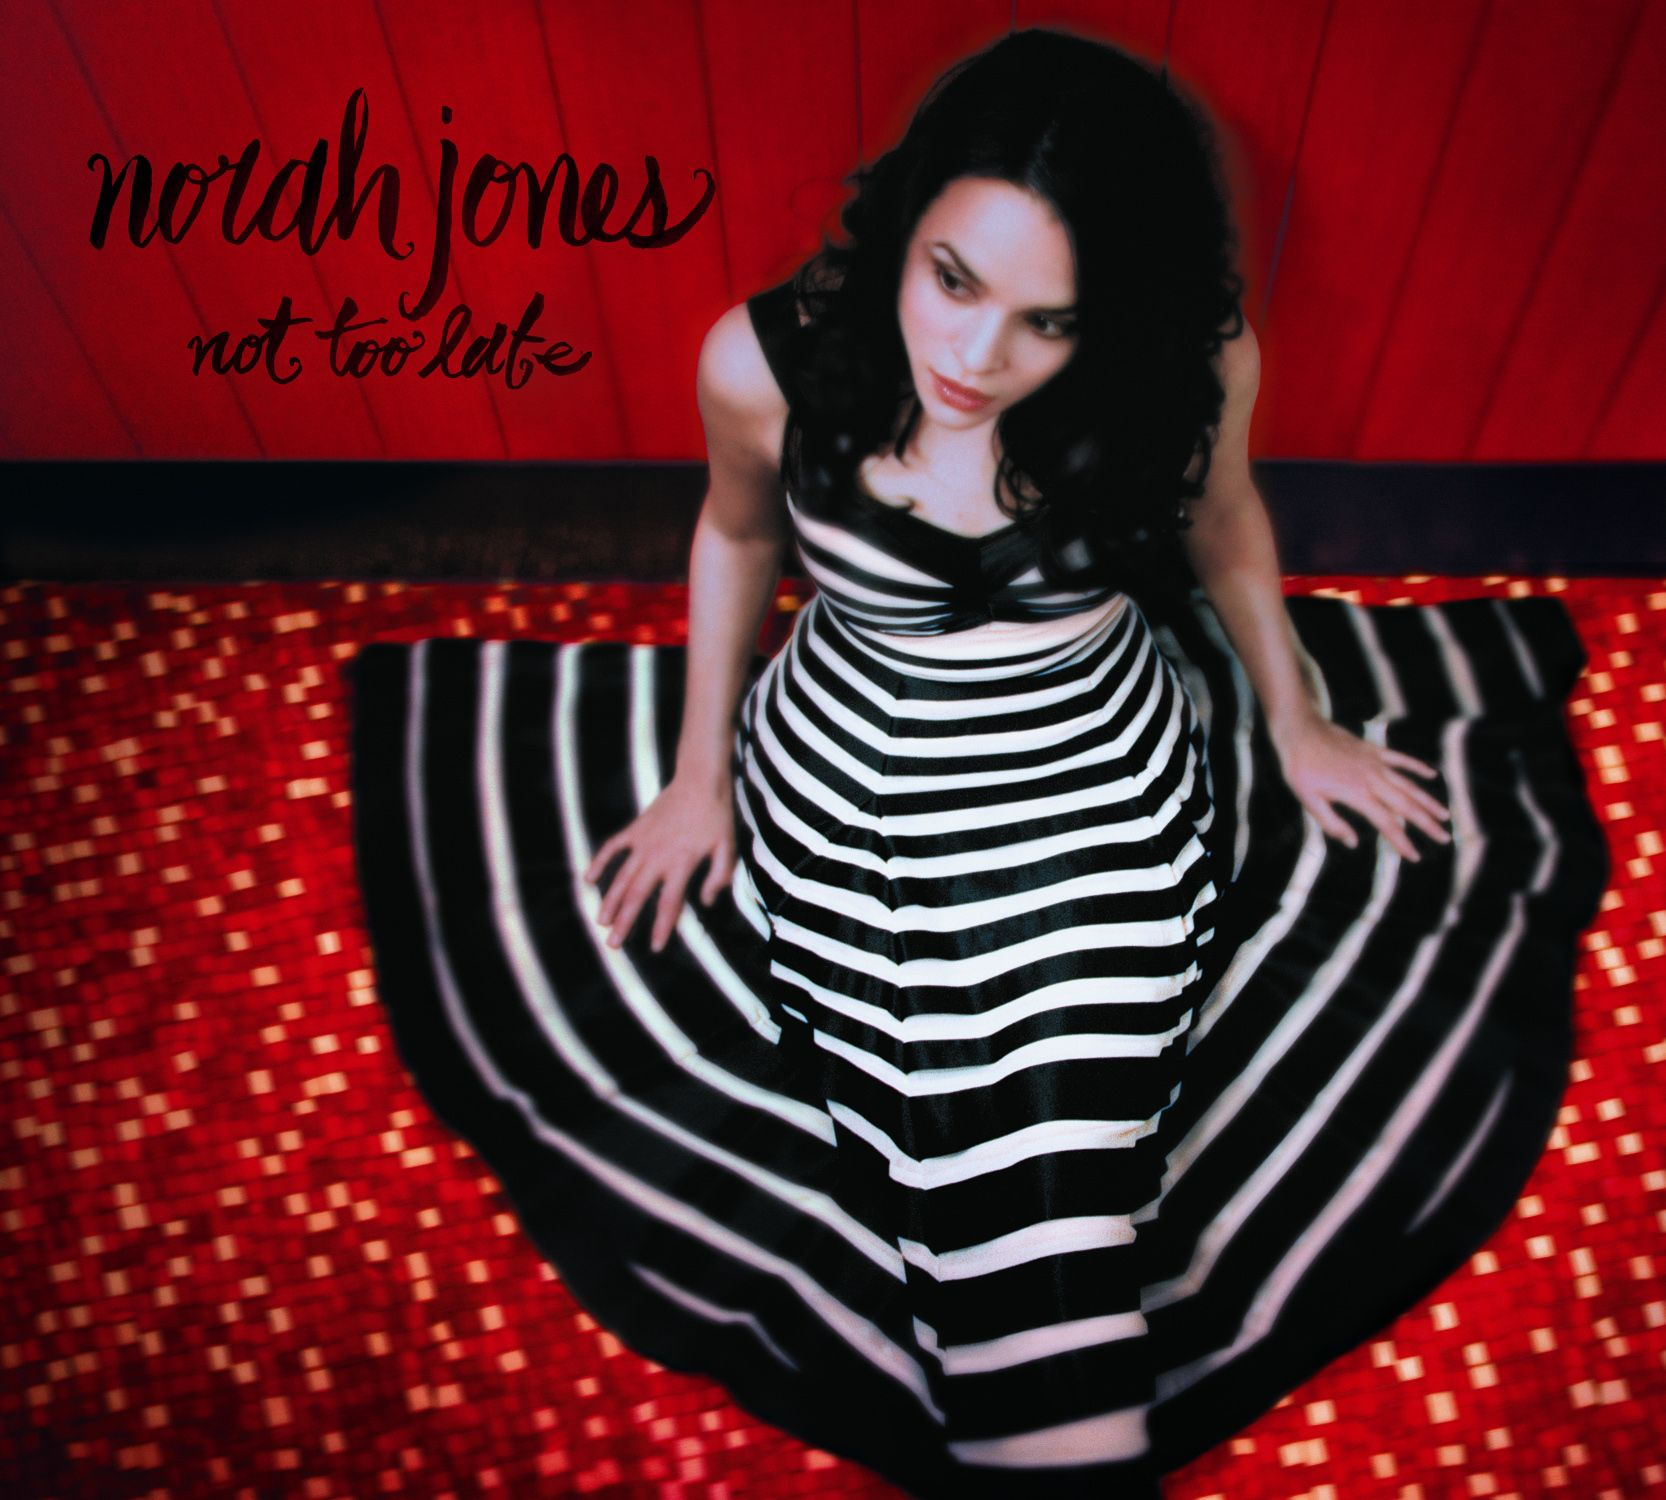 Norah Jones - Not Too Late album cover